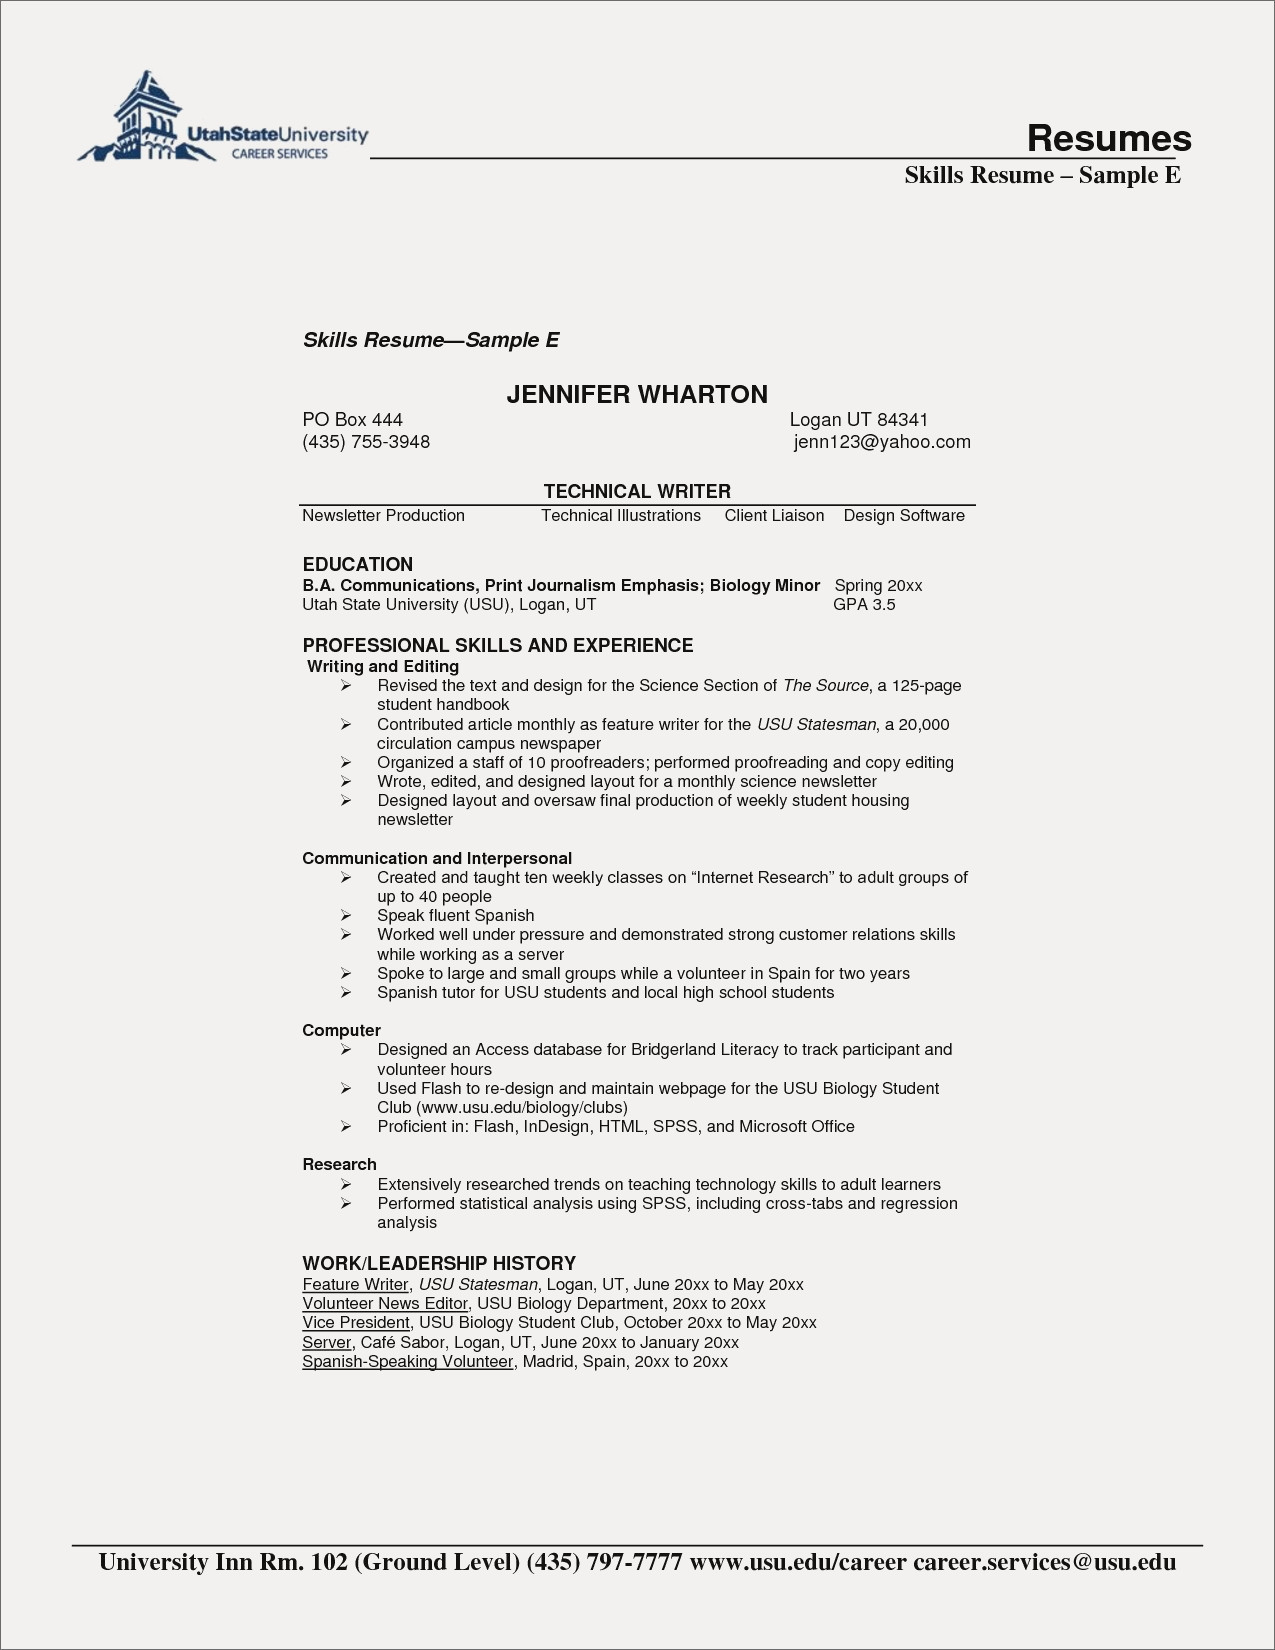 014 Biology Research Paper Lovely Resume Skills Section Example Save Puter Unique Of Remarkable Sample Format Full